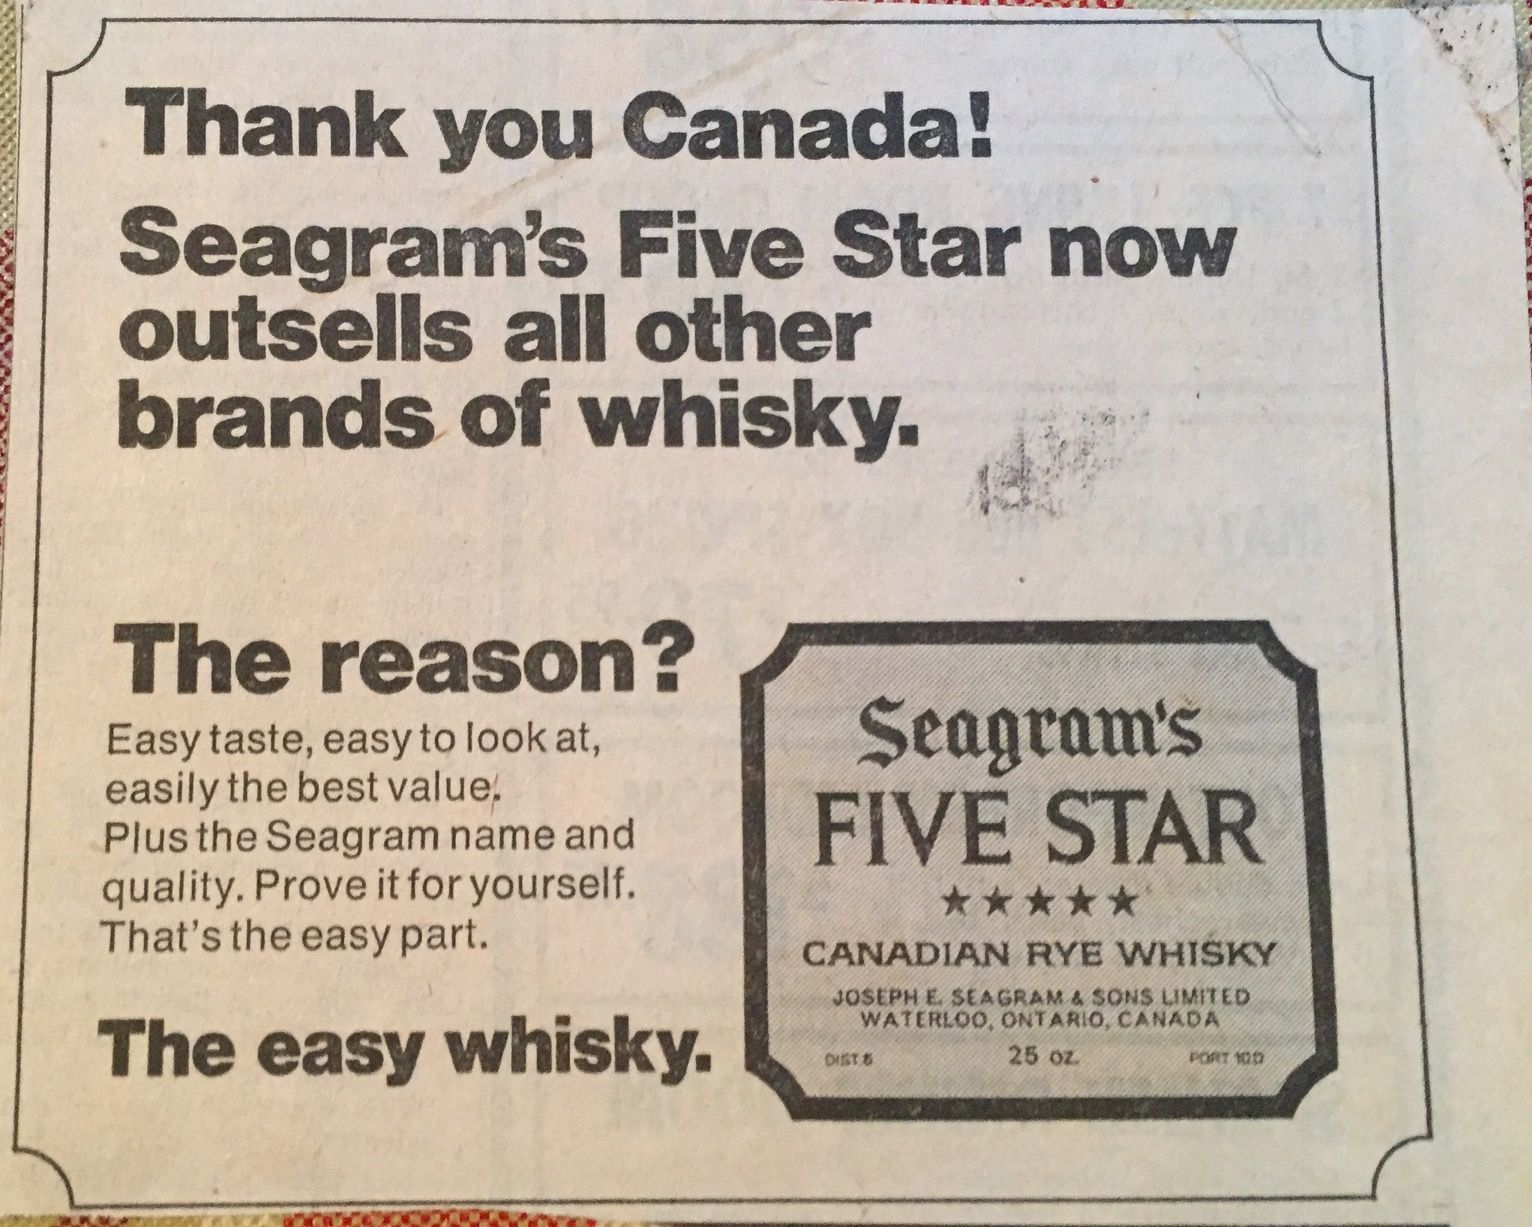 Vintage Seagram S Five Star Ad Vintage Advertisements Old Ads Stars Then And Now Fivestar video marketing | mcalister communications is one of the strongest public relations voices in the southeast. pinterest